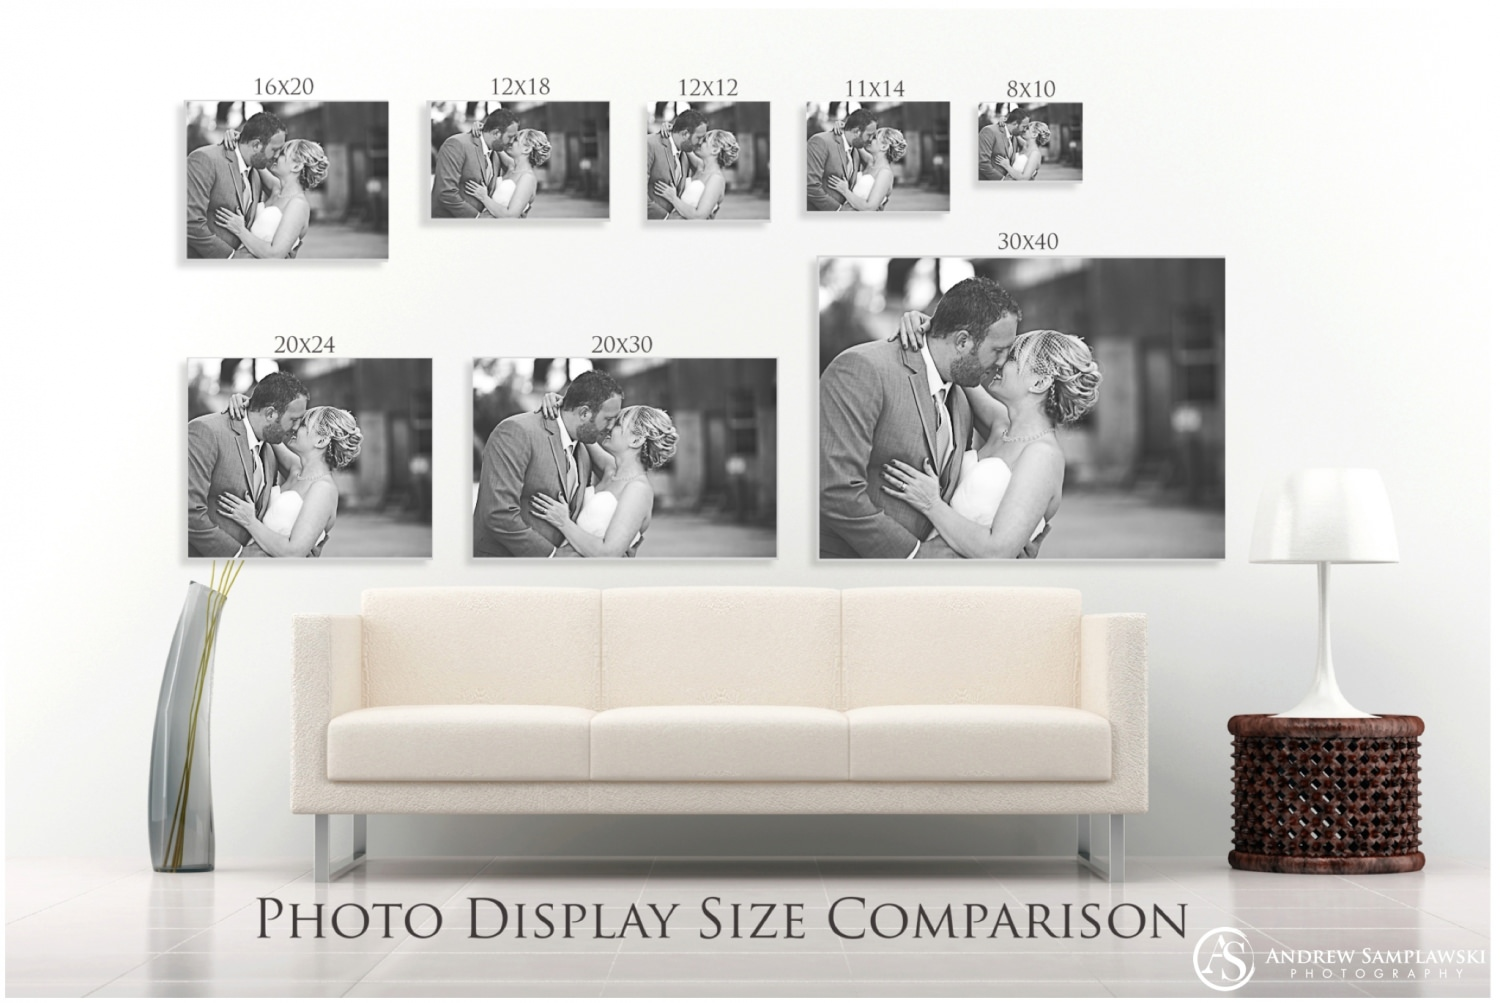 metadata: Wedding and family photographer, Andrew Samplawski, shares tips on the appropriate sizes for wall art and collages when using portraits in home décor.